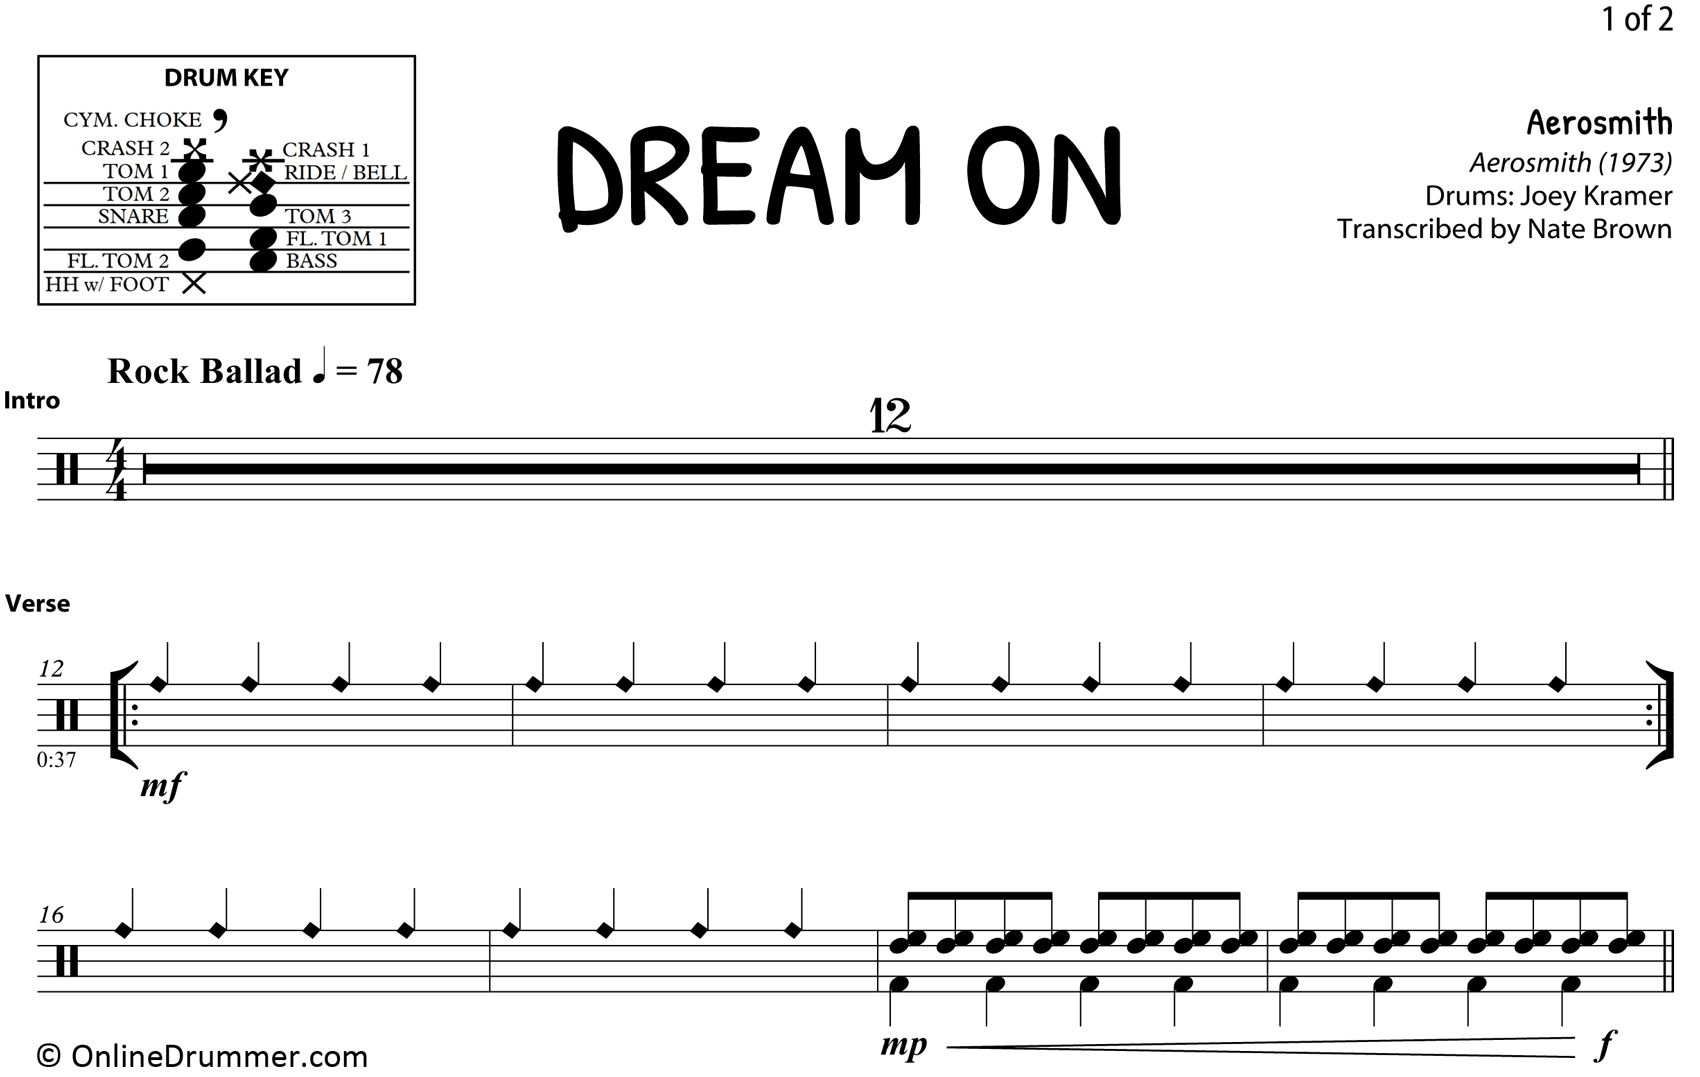 Dream On - Aerosmith - Drum Sheet Music